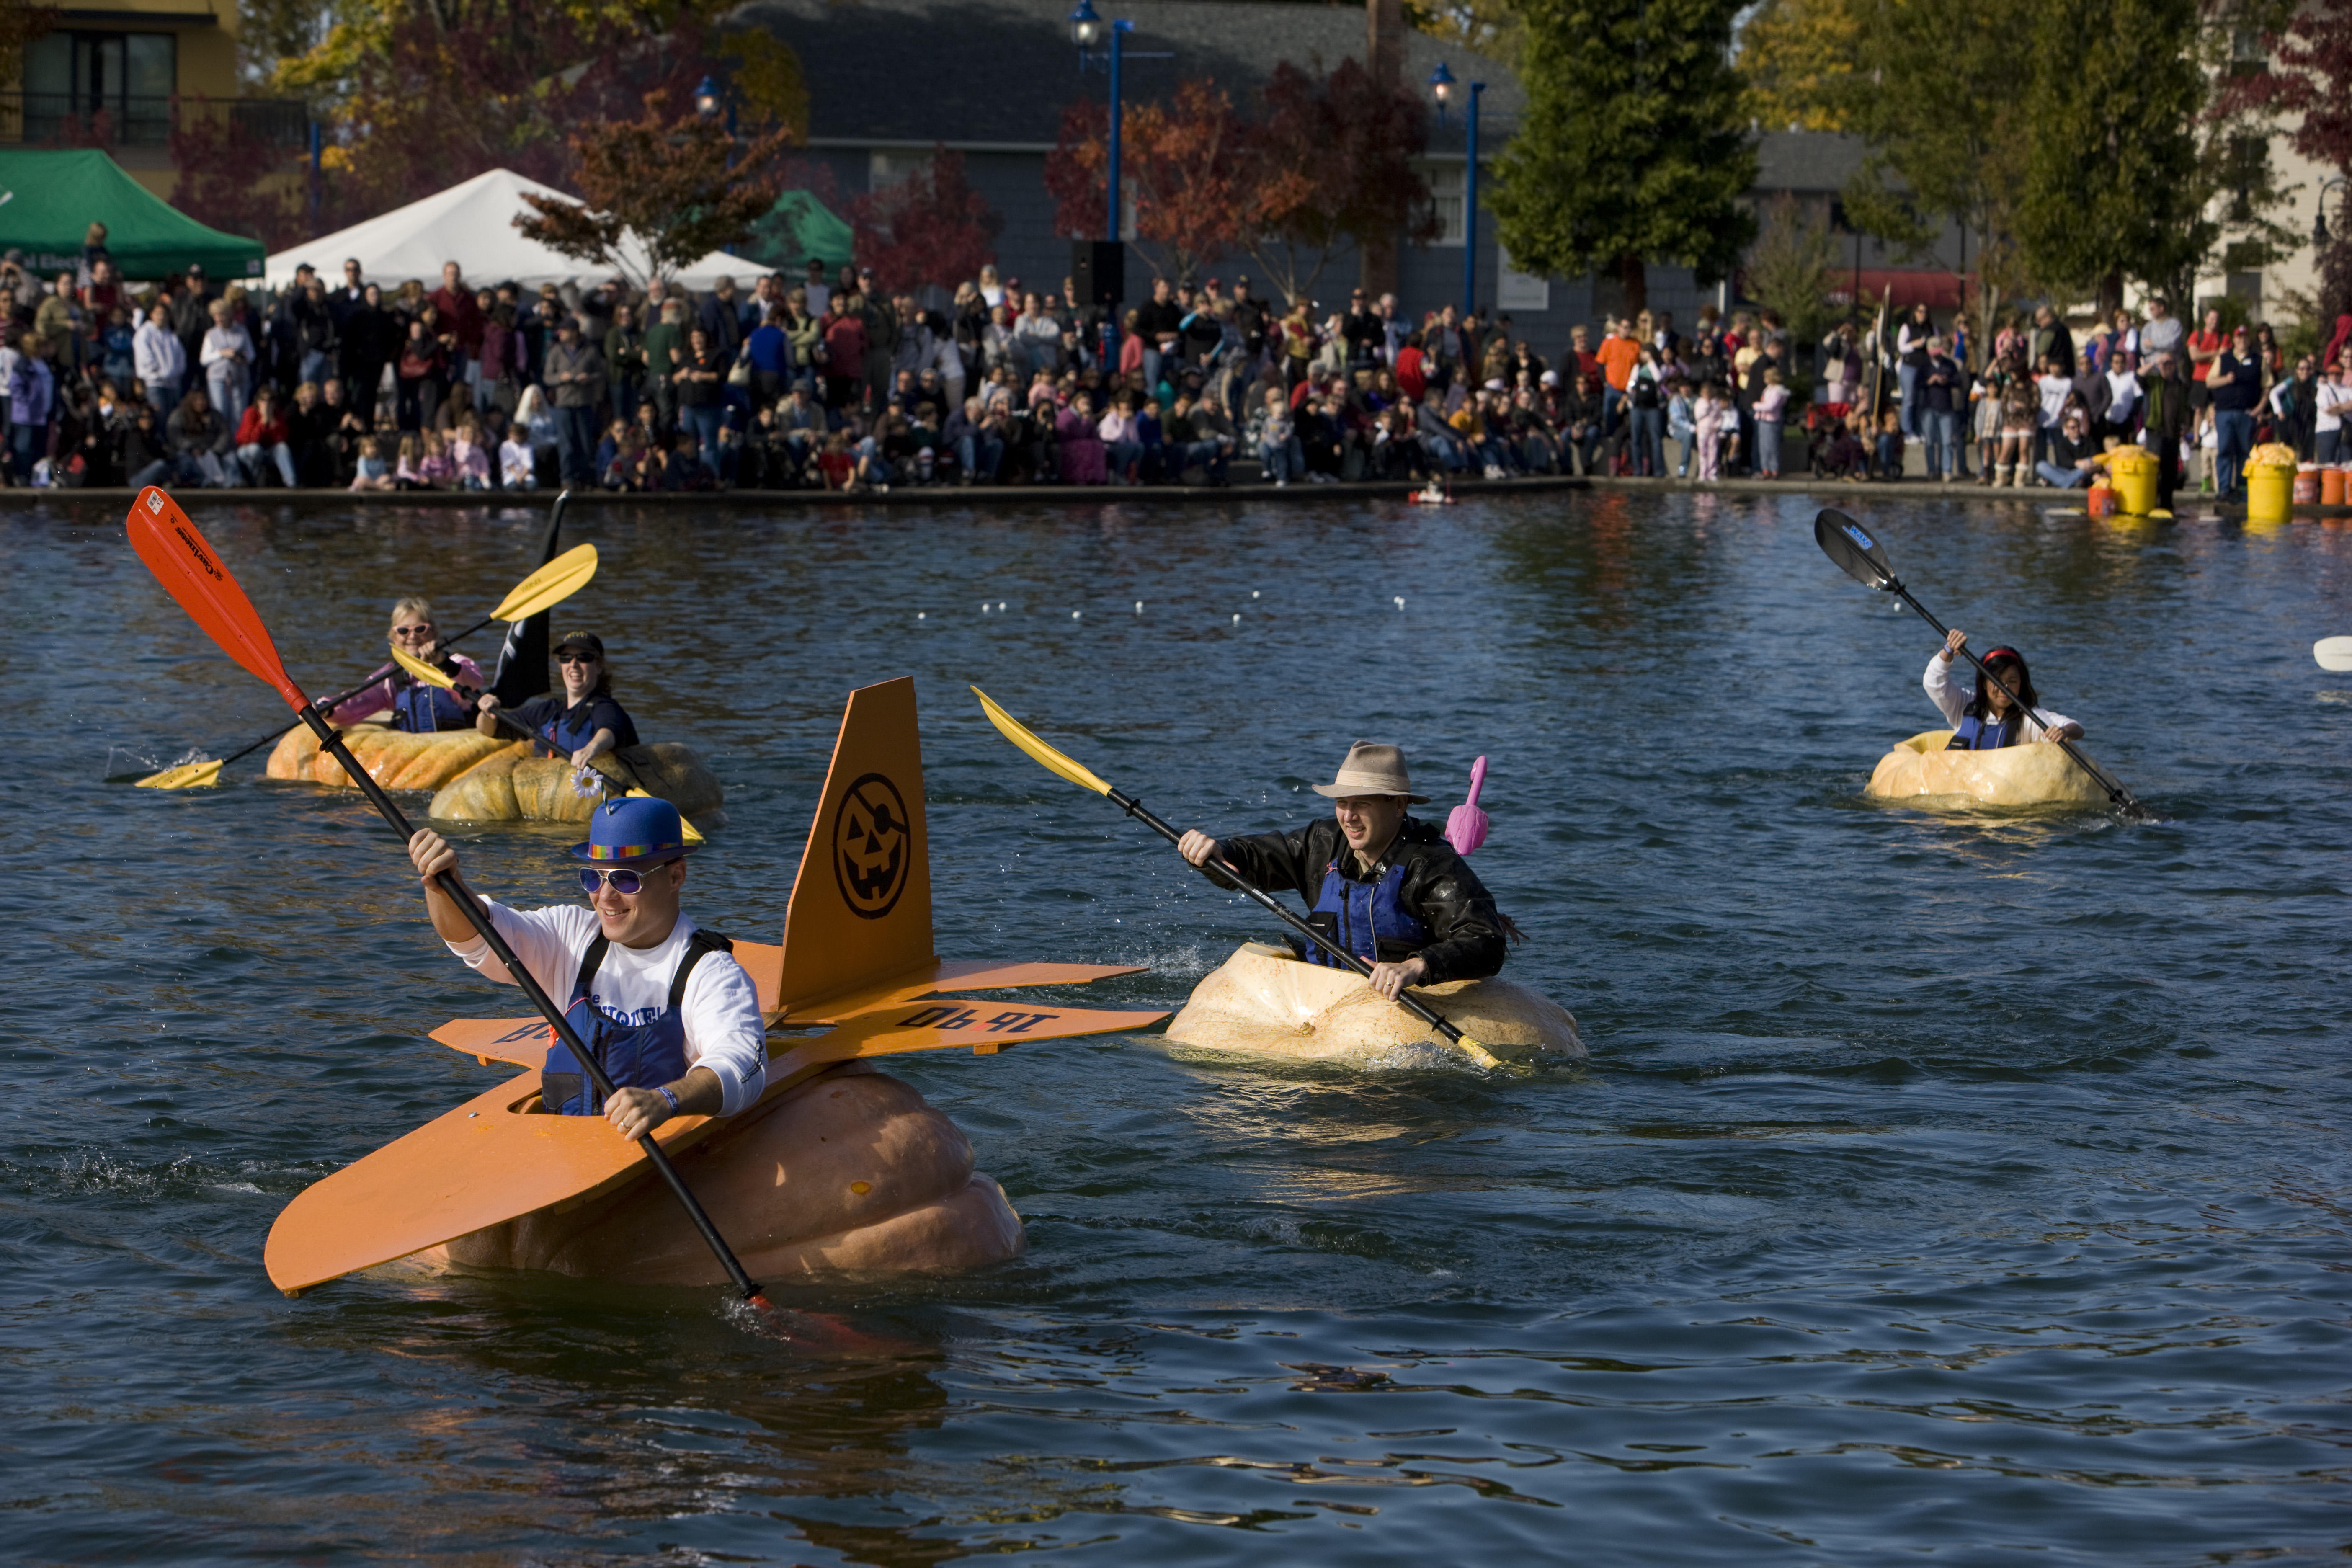 25 Oct 2008, Tualatin, Oregon, USA --- 25 October 2008: 5th Annual West Coast Giant Pumpkin Regatta at Tualatin Commons in Tualatin, Ore. Locally-grown pumpkins weighing up to 800 pounds are hollowed-out and serve as vessels for a boat race around the lake. --- Image by © Sol Neelman/Corbis